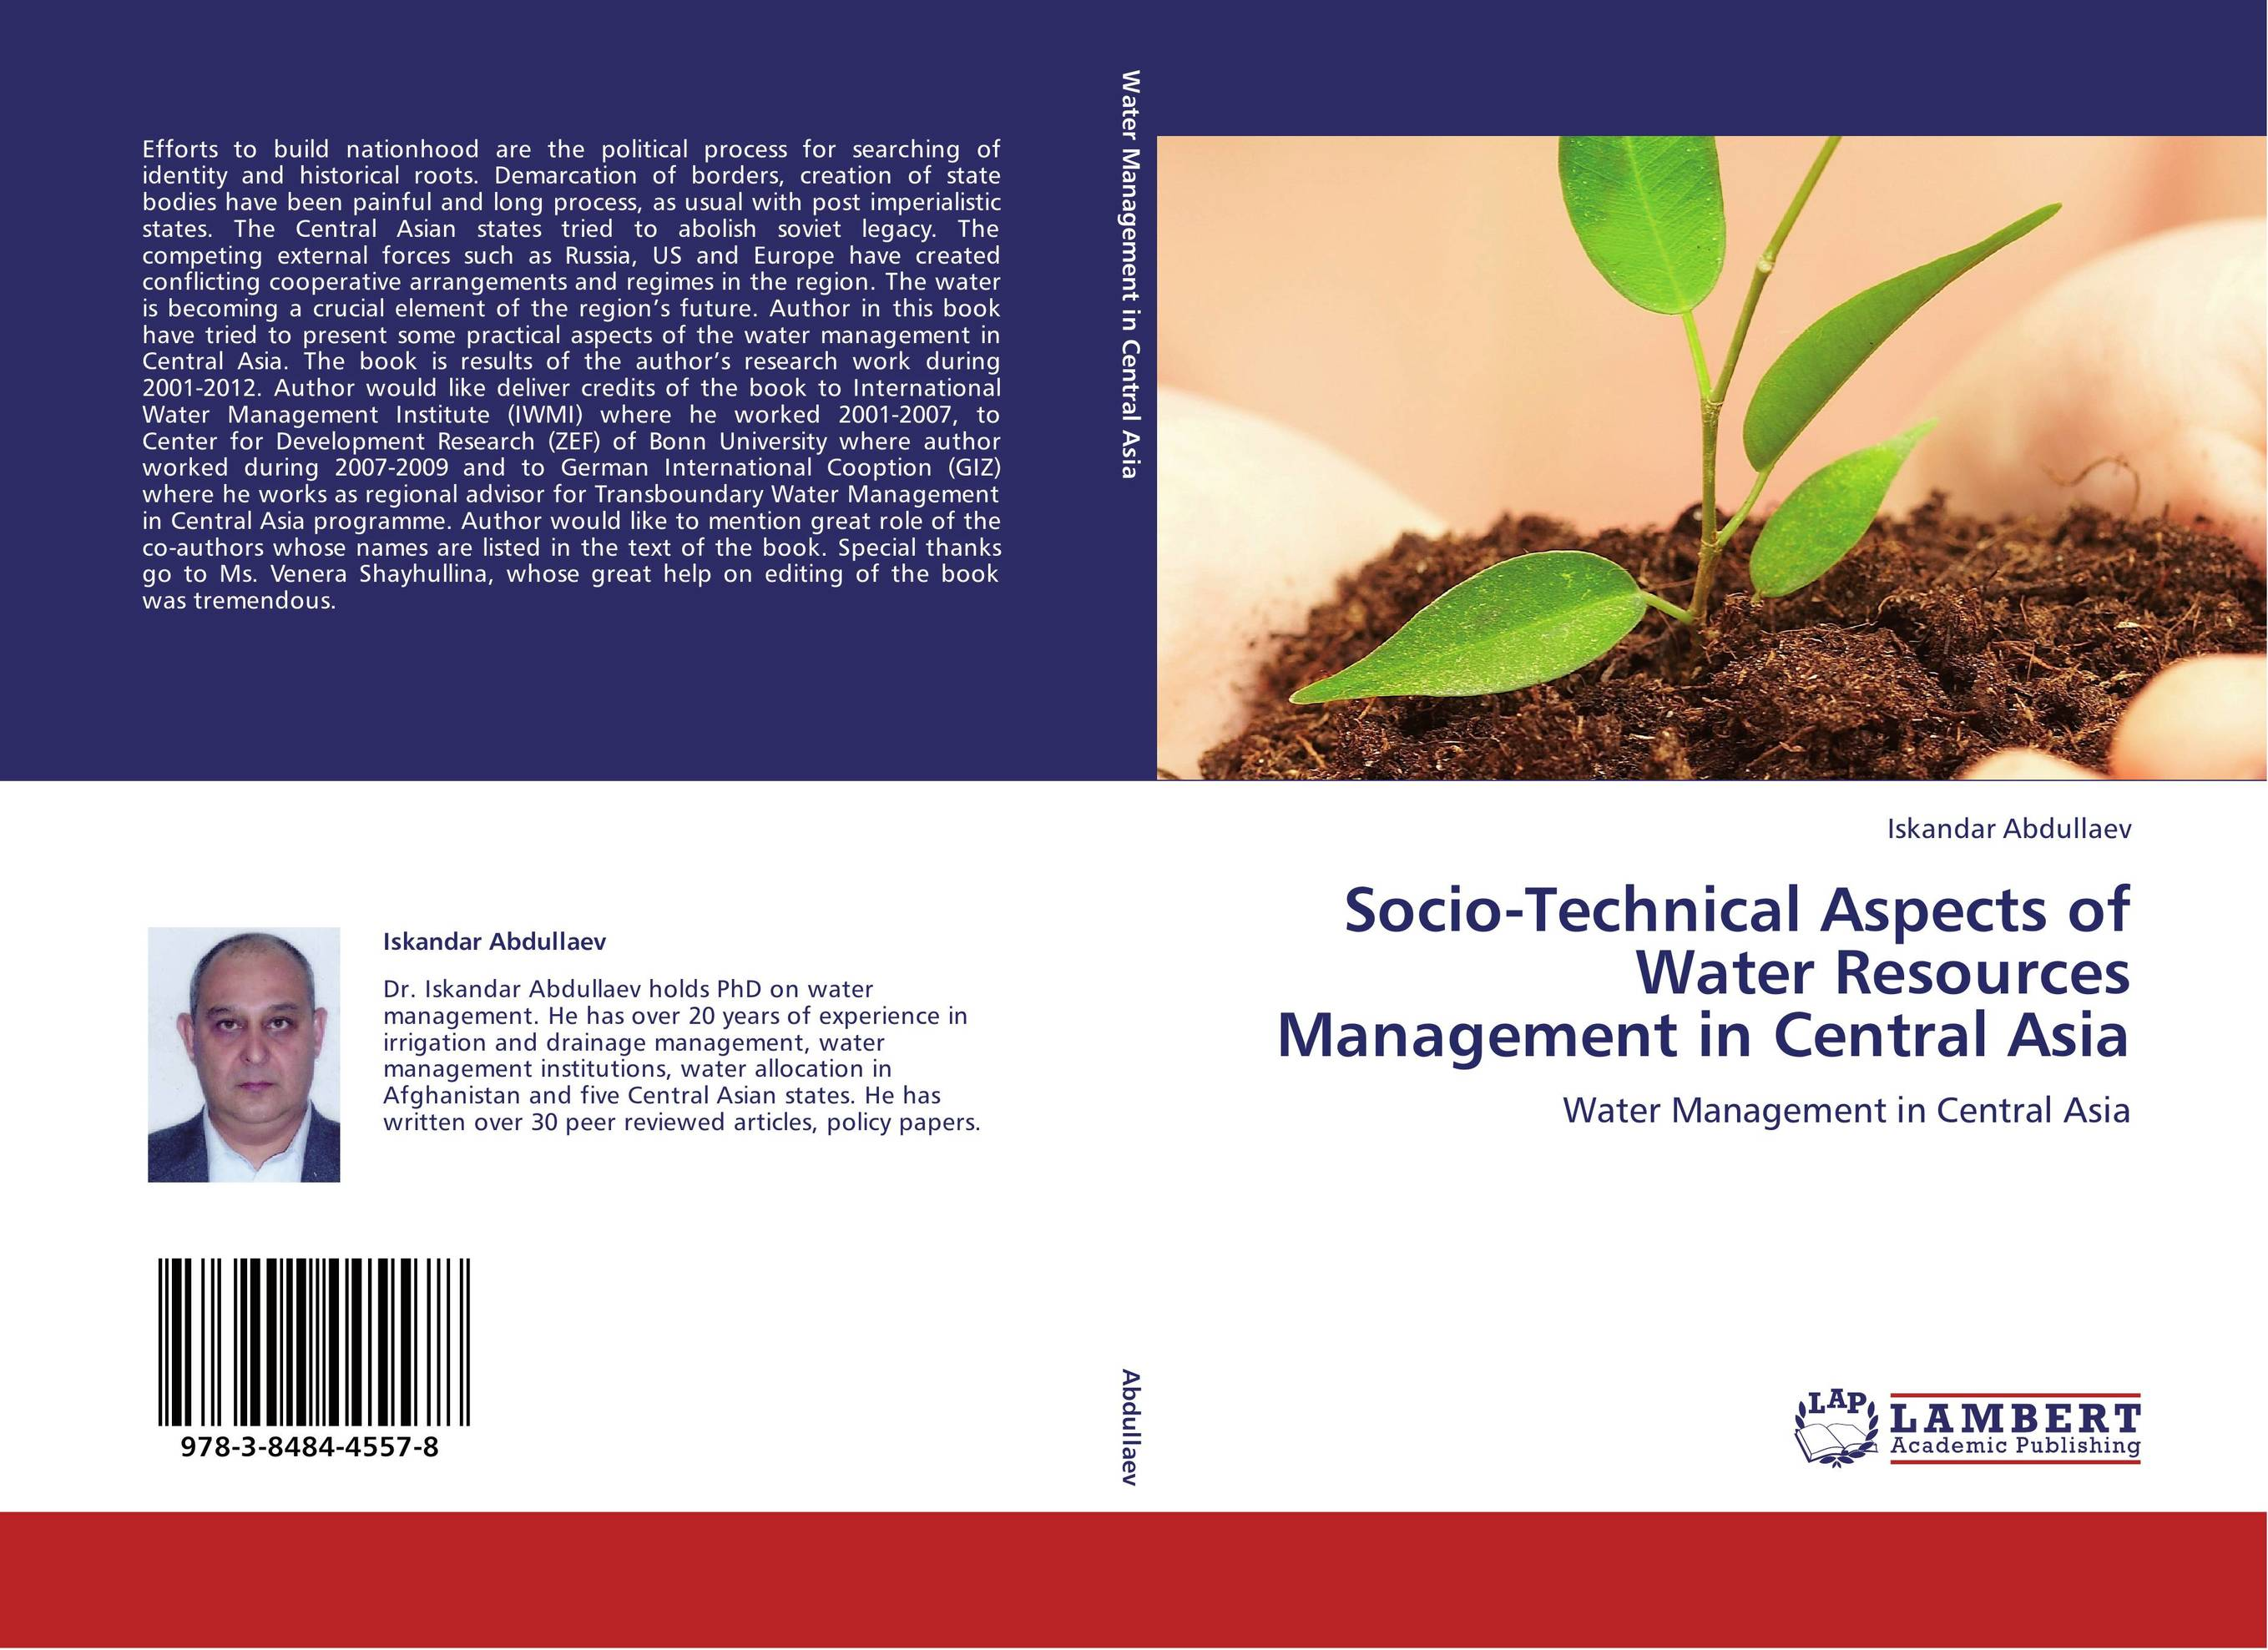 research papers on water resources management The management of water resources needs to focus on both supply and demand aspects investments in dams, reservoirs, wells, pumps and canals have in the past provided adequate access to fresh water supplies.